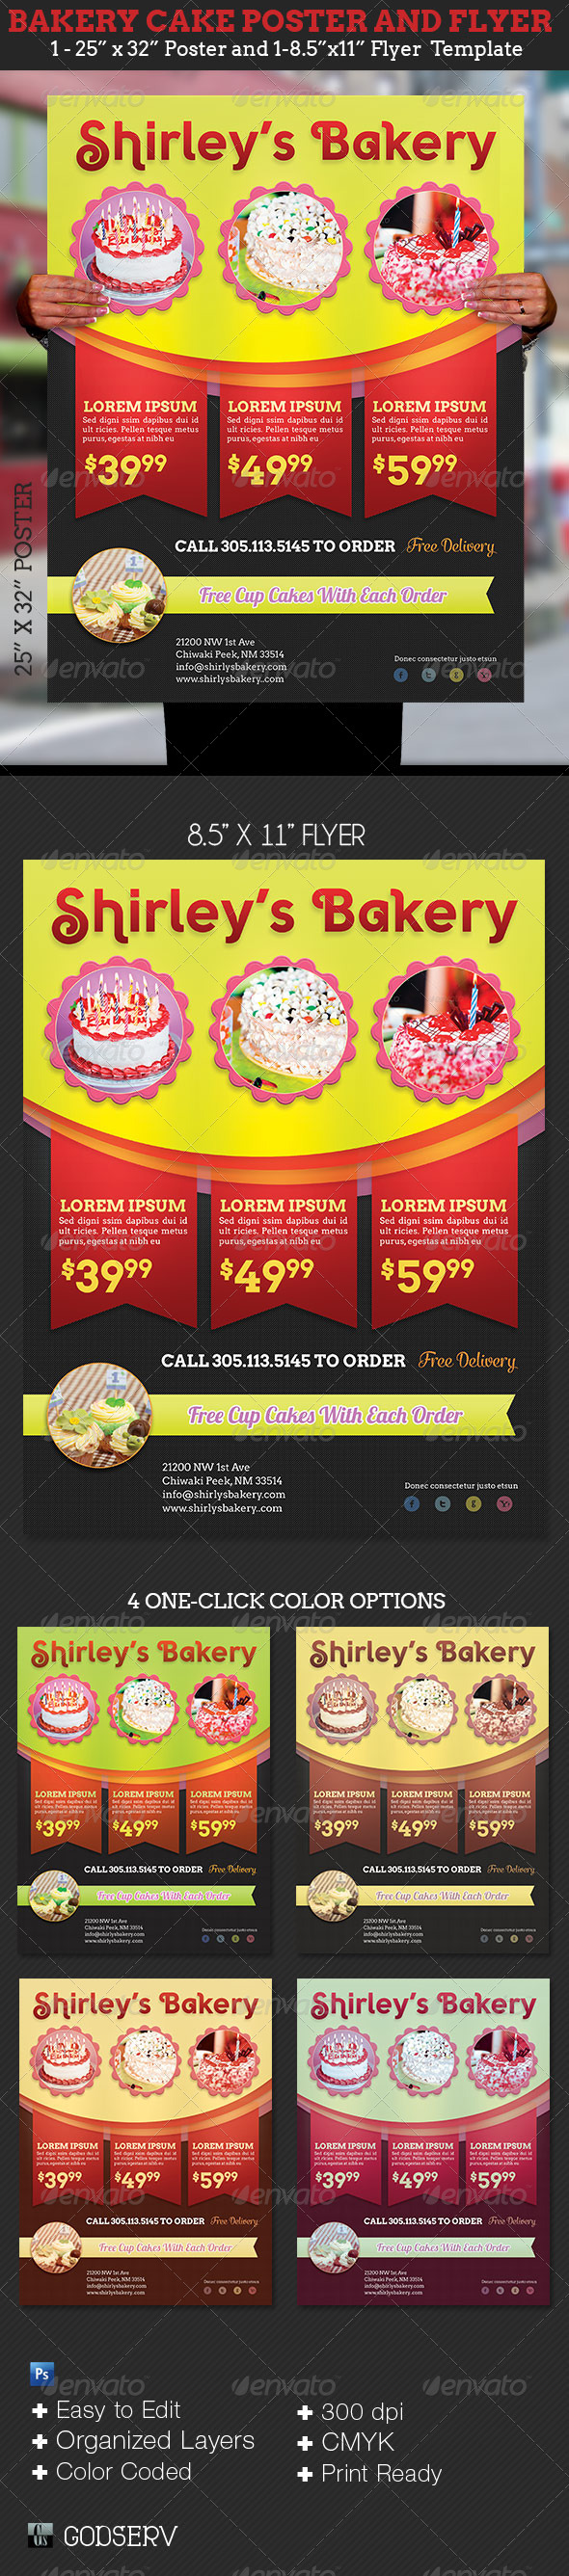 GraphicRiver Bakery Cake Flyer and Poster Template 6212148